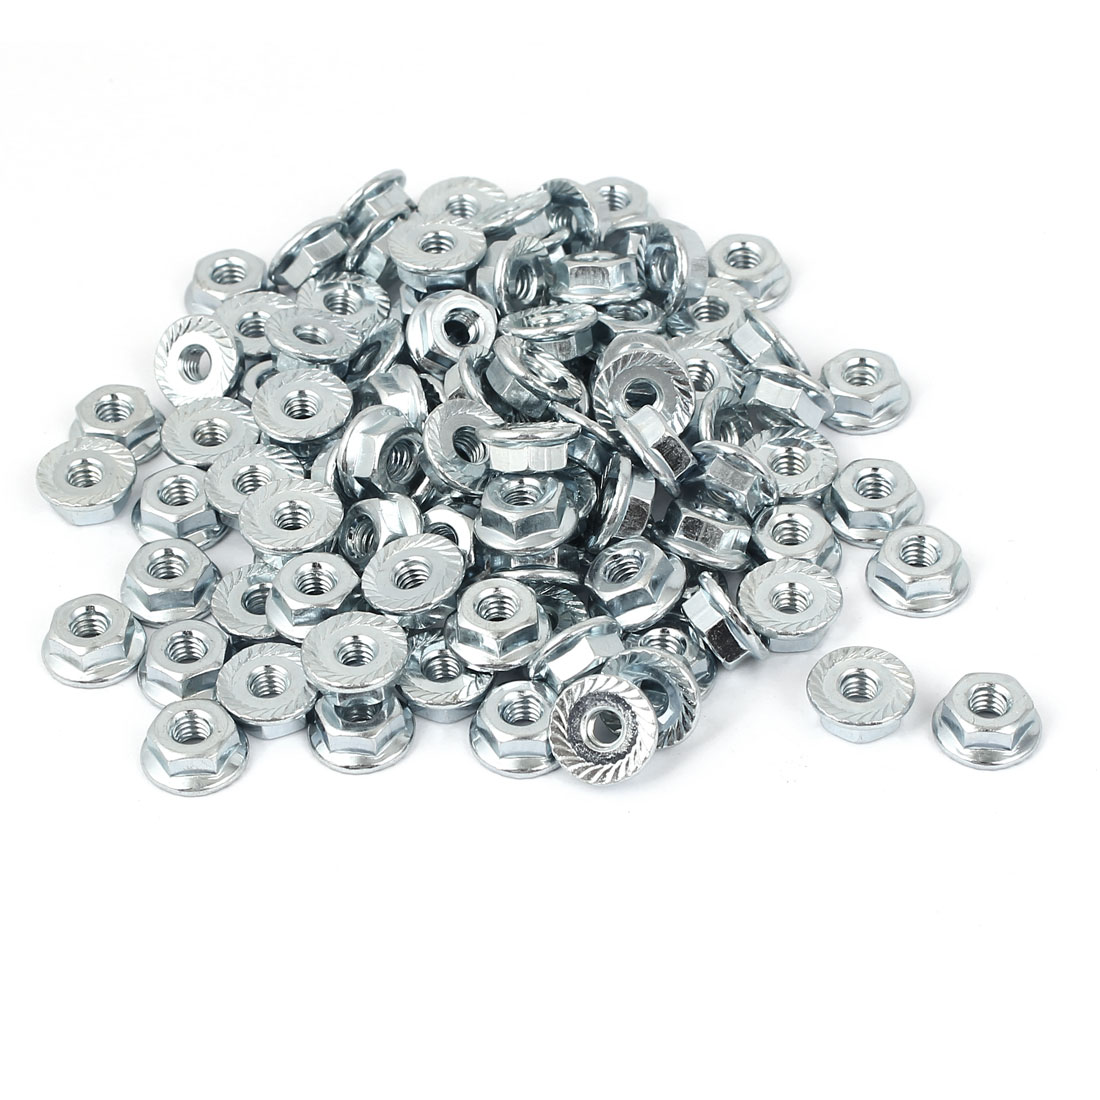 8#-32 Carbon Steel Serrated Hex Flange Lock Nuts 100pcs